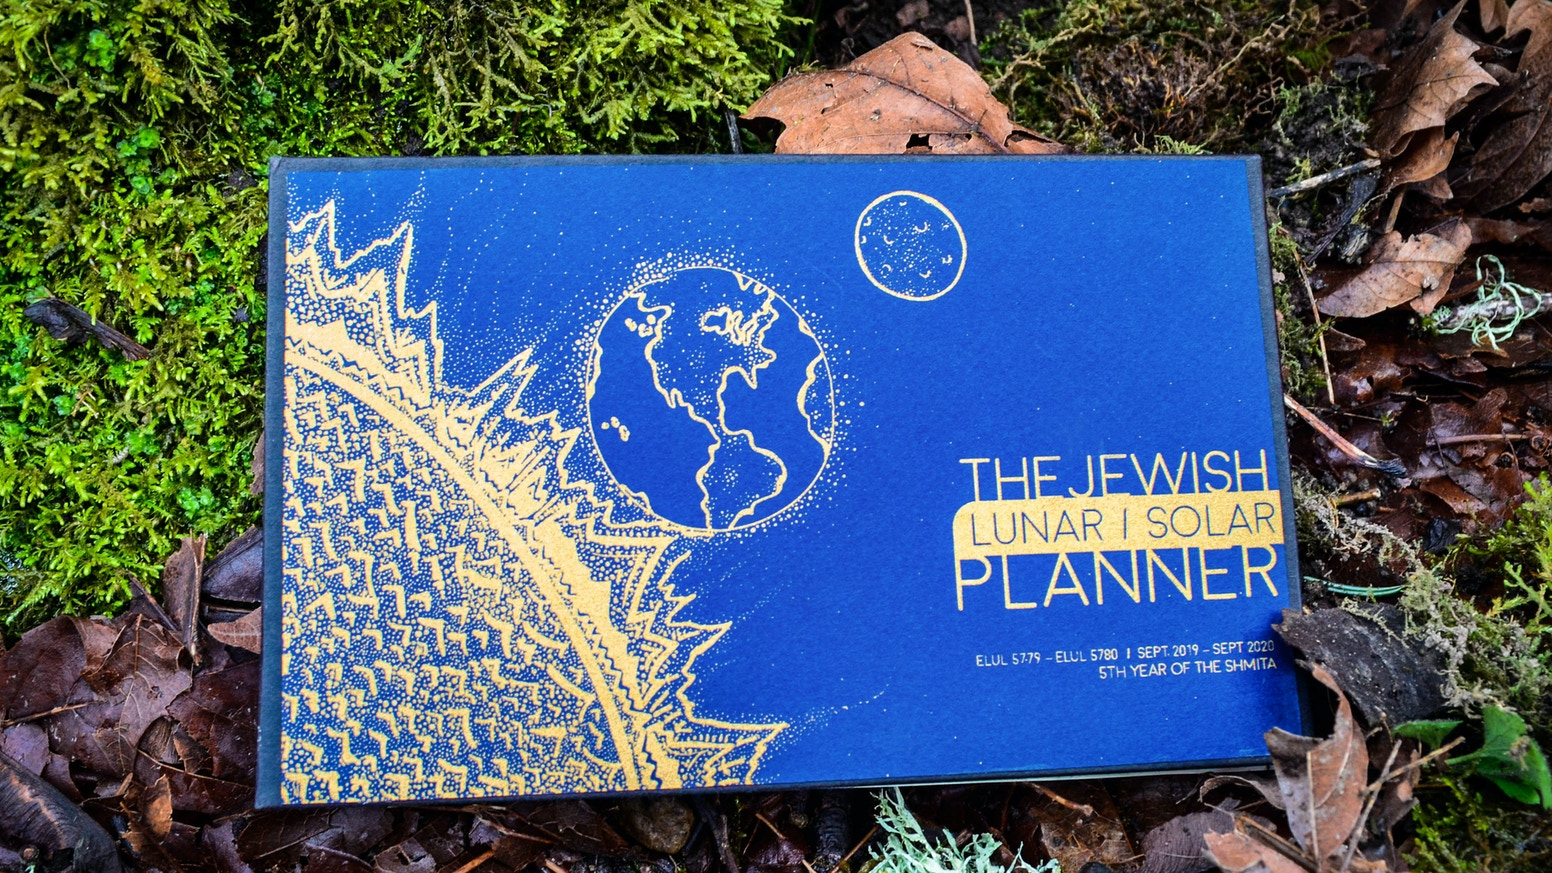 An illustrated, interactive weekly planner that integrates the Hebrew & Gregorian calendars, spanning the year 5780 (Sept '19-Sept '20)